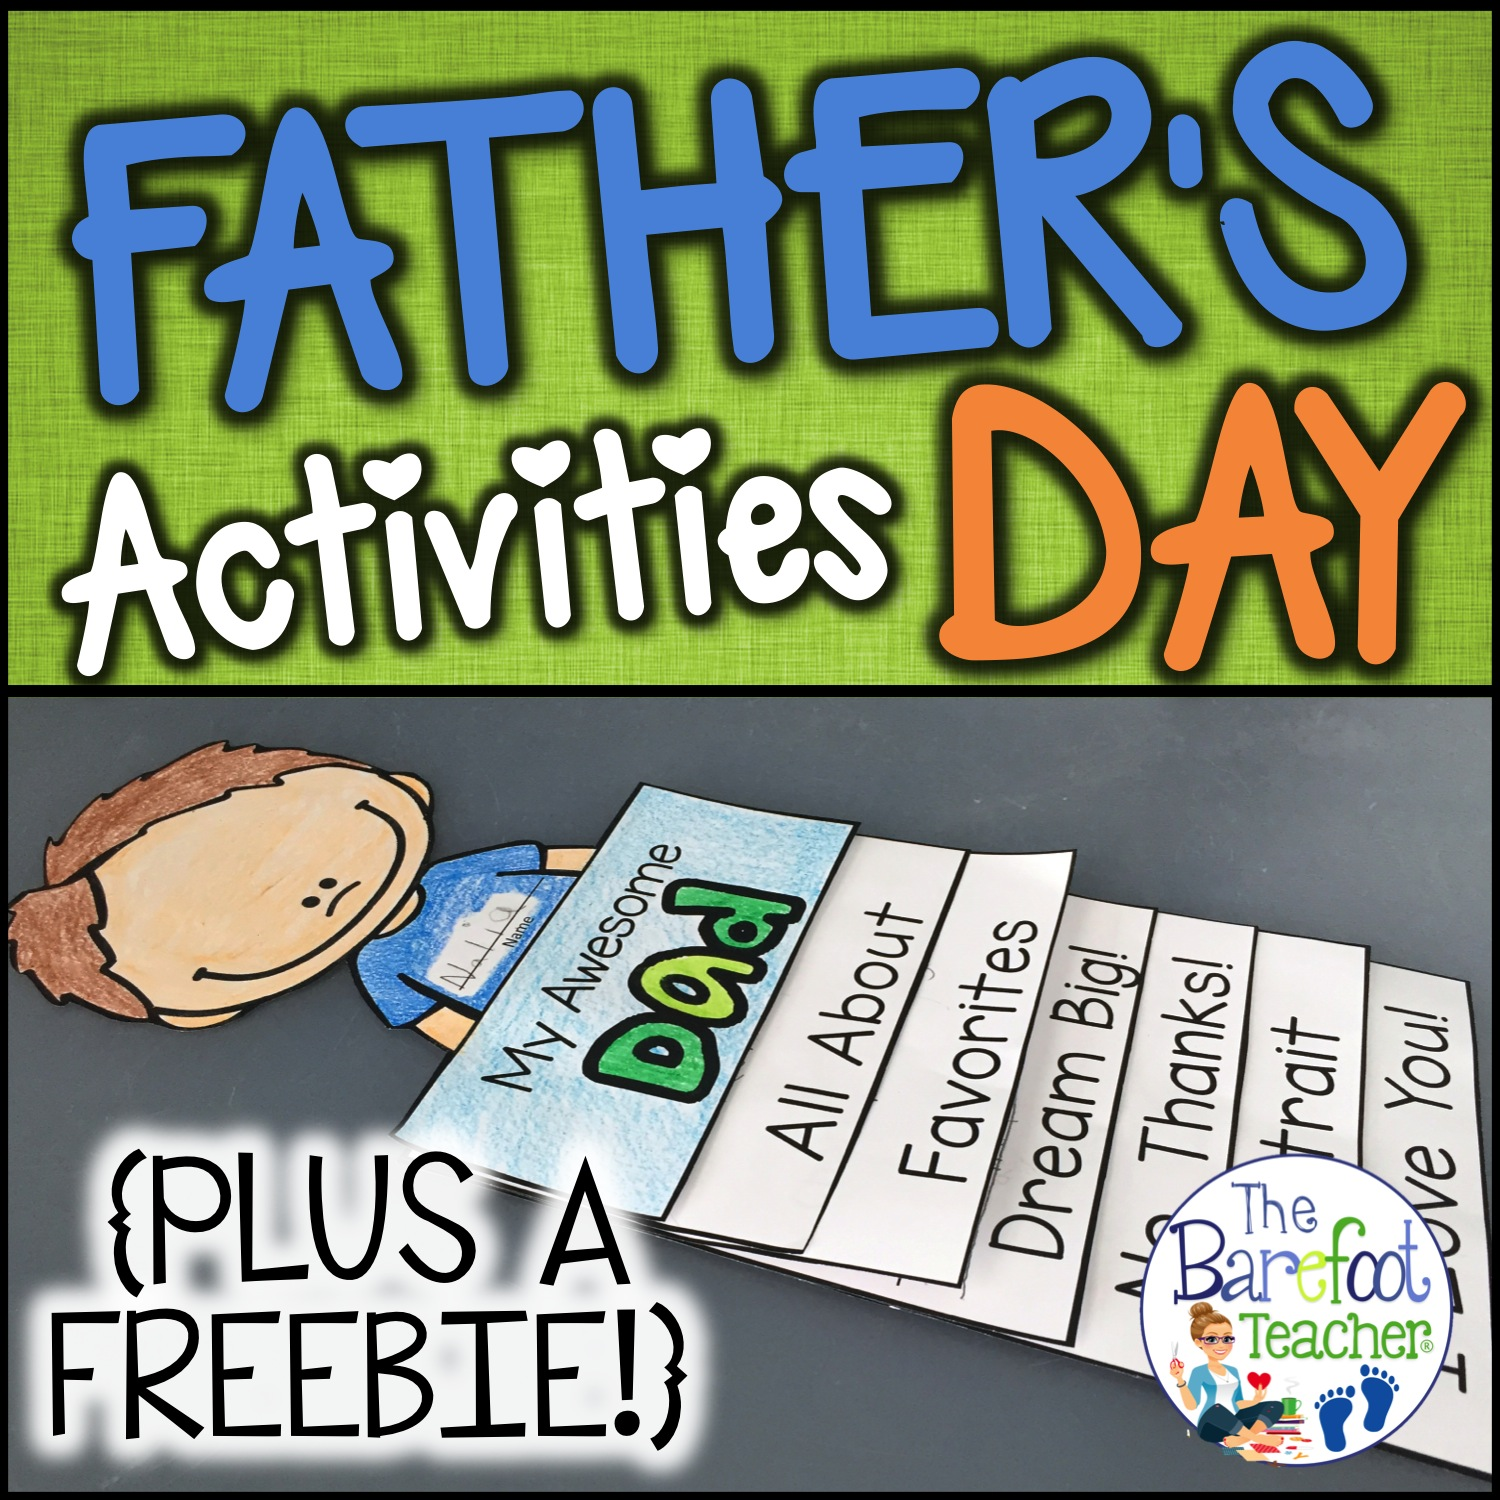 Fathers Day Activities Plus A Freebie